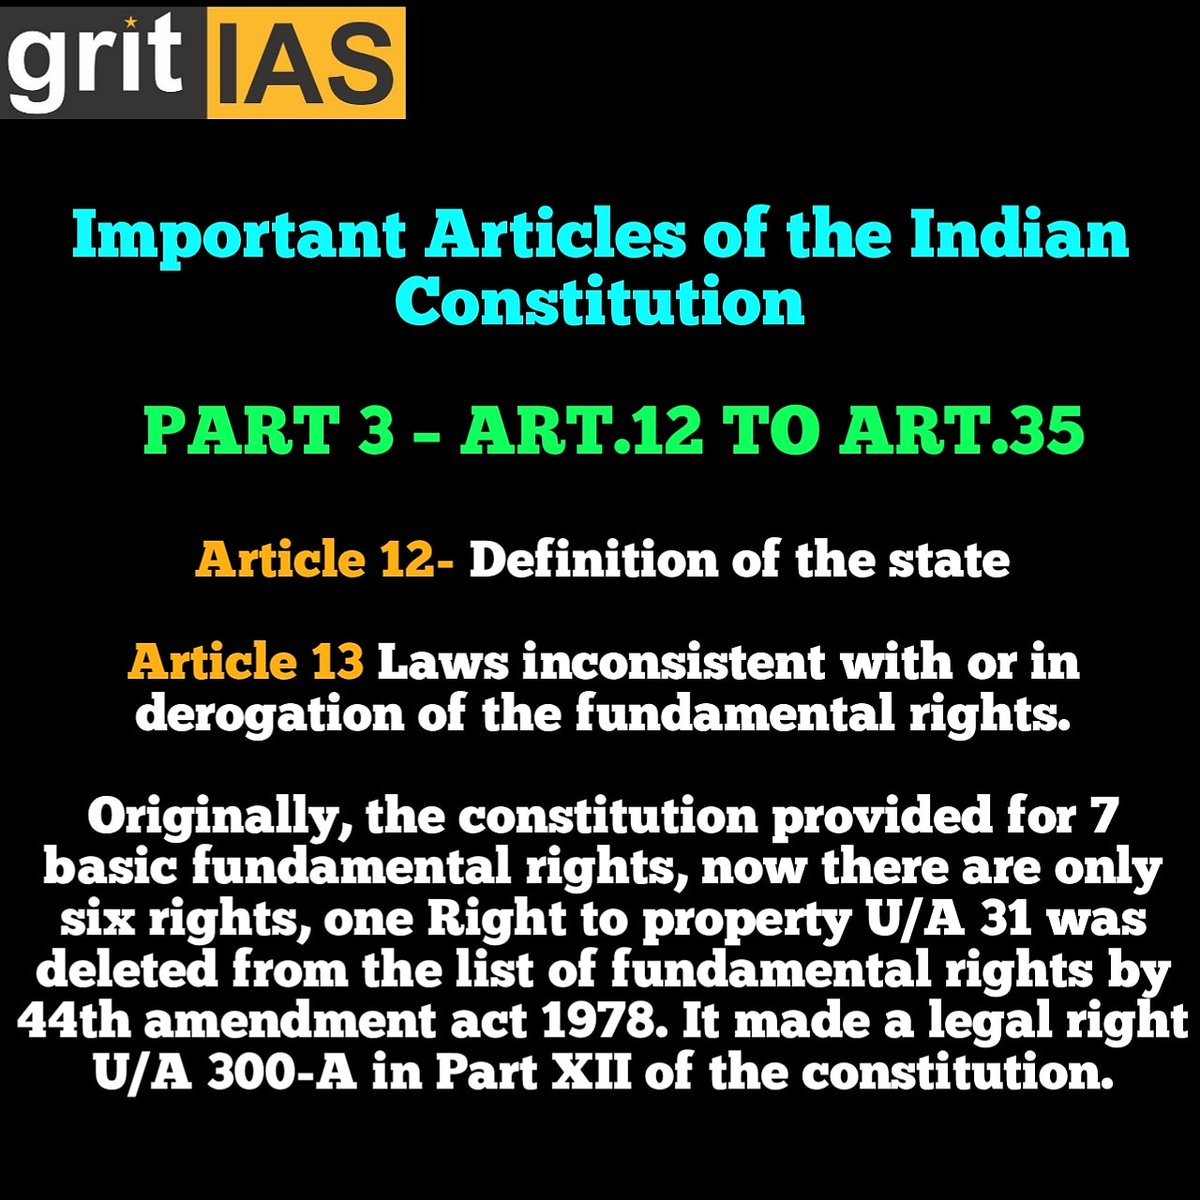 #ias #upsc #india #polity #facts #education #grit #hyderabad #learn #new #goals #engineeringlovers #engineeringfinals #indianconstitution #indianconstitutionday #indian #upscexam #upscmotivation #upsc2019 #upscguide #upscaspirants #upsccoaching #upscpathshala #iasmotivation #biopic.twitter.com/2Hg08EymcA